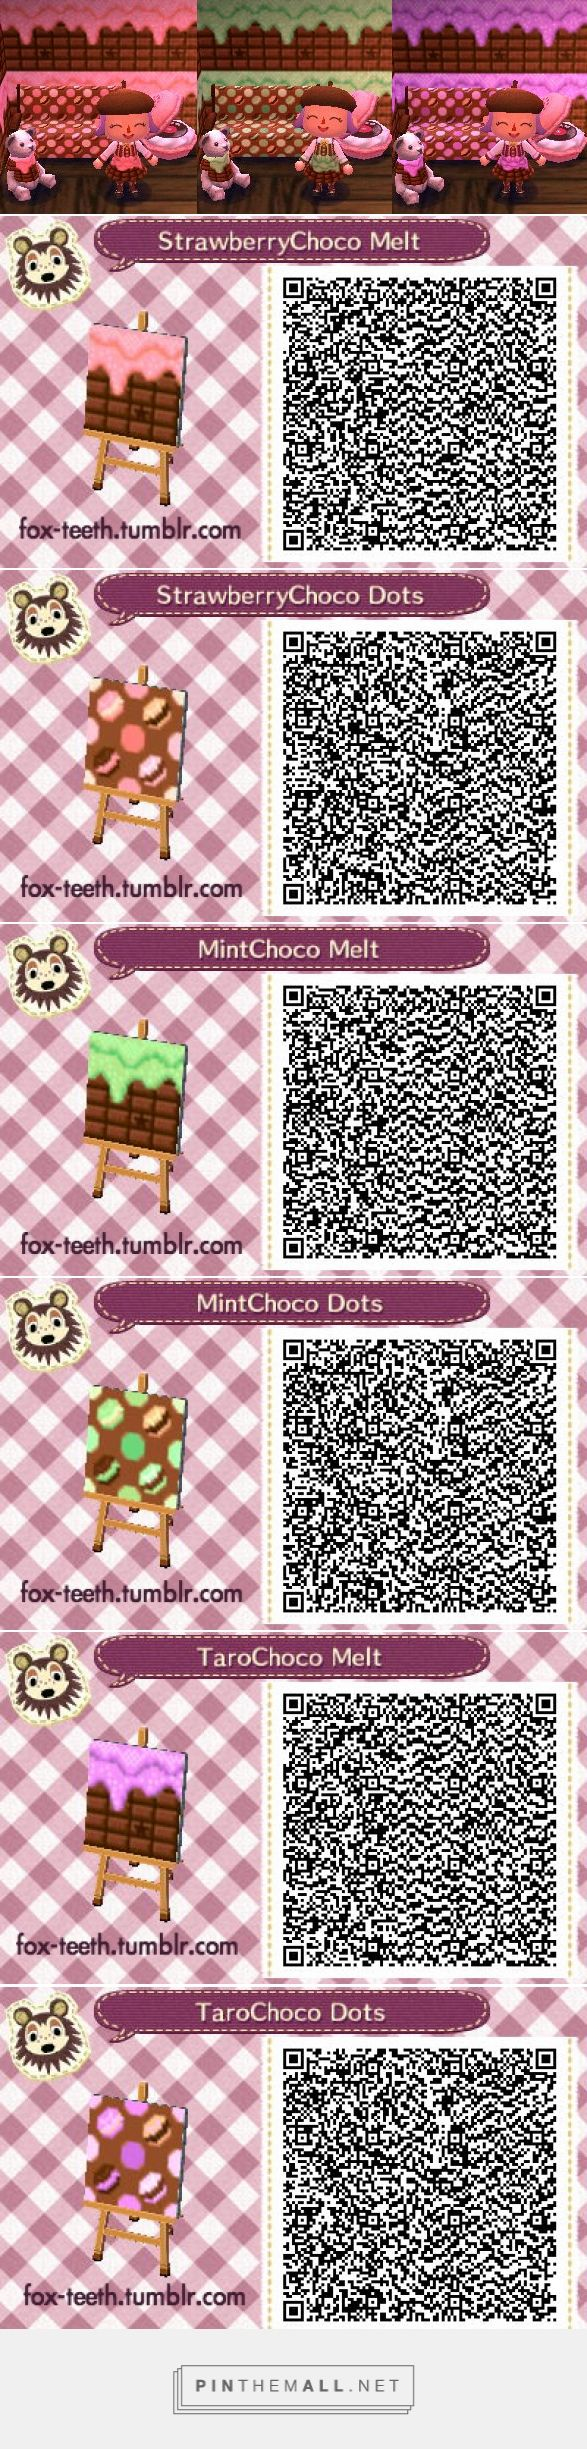 Melty chocolate and macaron themed pattern in pink, green and purple